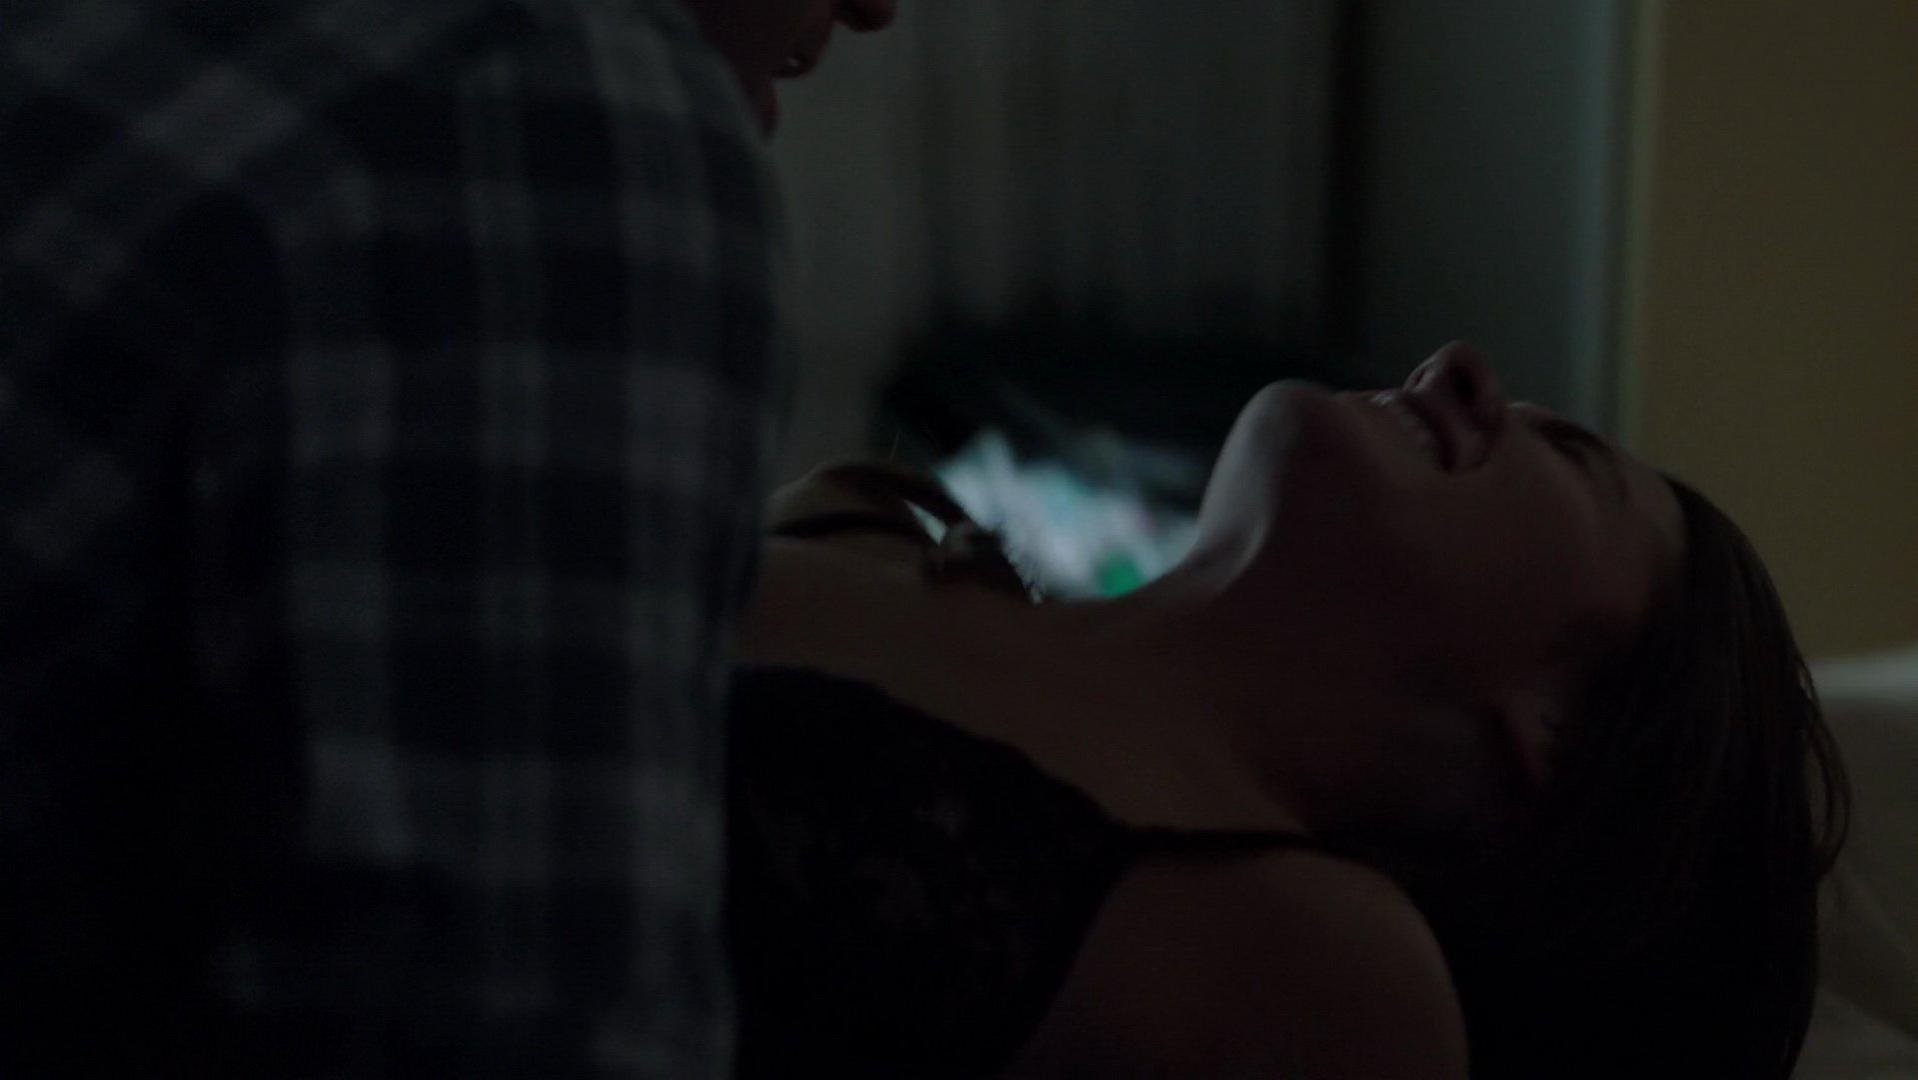 Addison timlin sex scene in the awkward moment 9